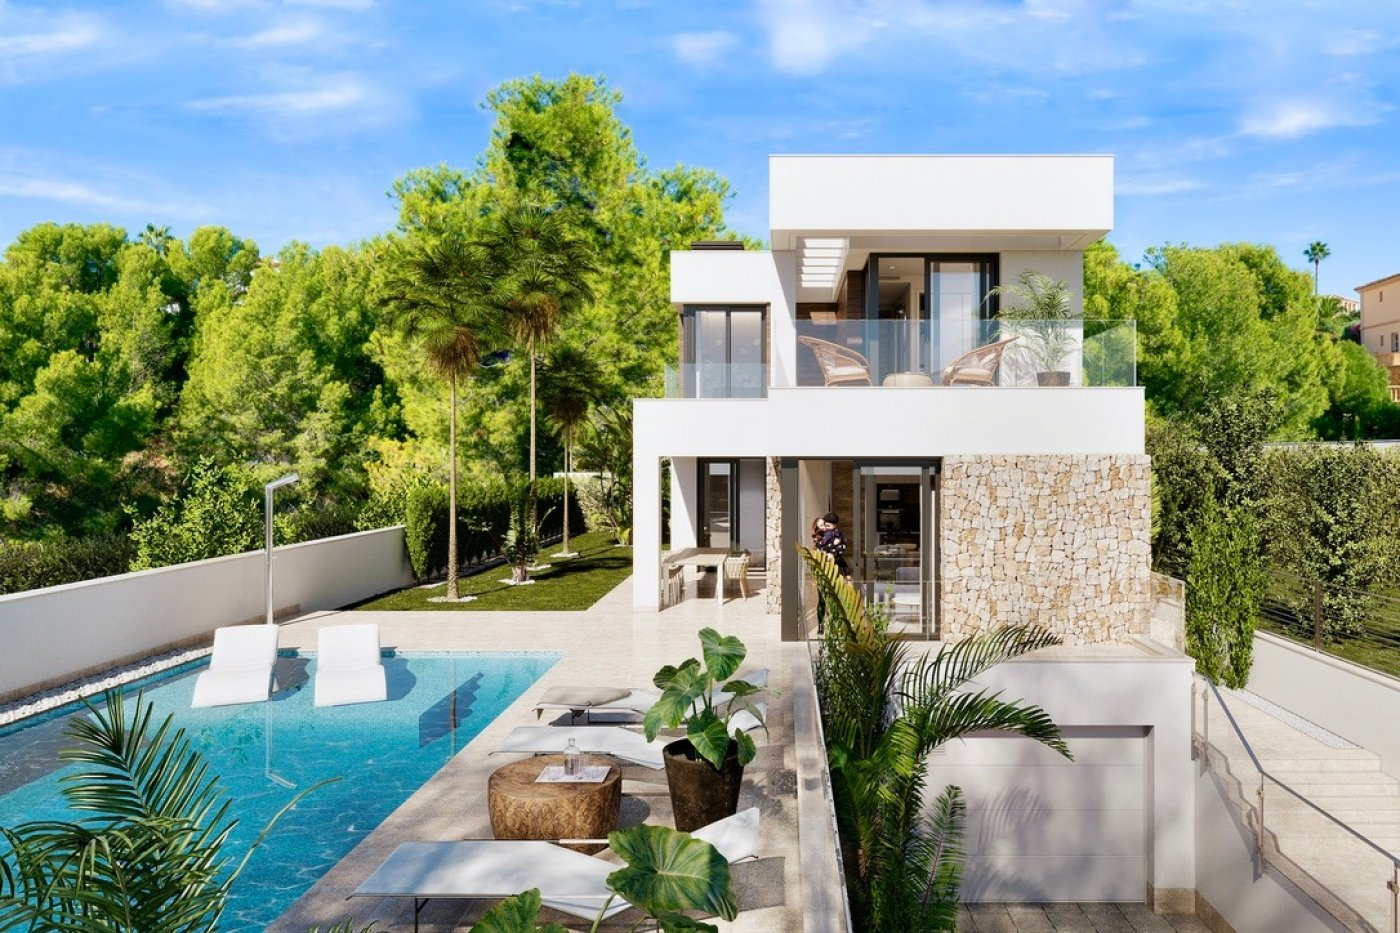 Gallery Image 10 of Luxury villa in Finestrat fantastic views over Benidorm, southwest facing - own pool, large basement